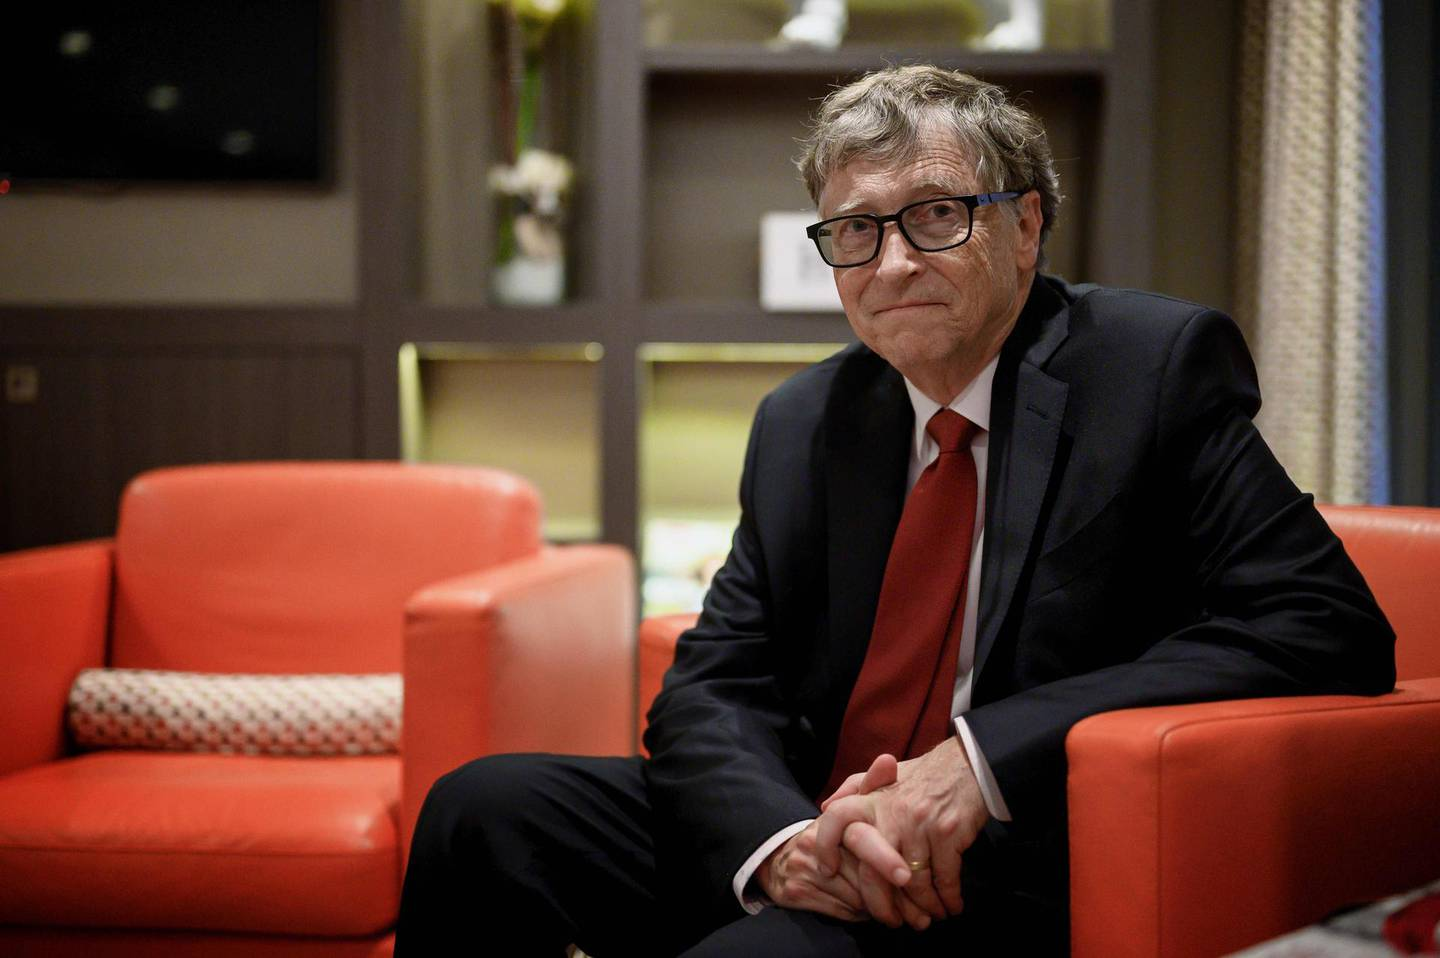 (FILES) In this file photo US Microsoft founder, Co-Chairman of the Bill & Melinda Gates Foundation, Bill Gates, poses for a picture on October 9, 2019, in Lyon, central eastern France, during the funding conference of Global Fund to Fight AIDS, Tuberculosis and Malaria. Microsoft on Friday announced that co-founder Bill Gates has left its board of directors to devote more time to philanthropy. / AFP / JEFF PACHOUD